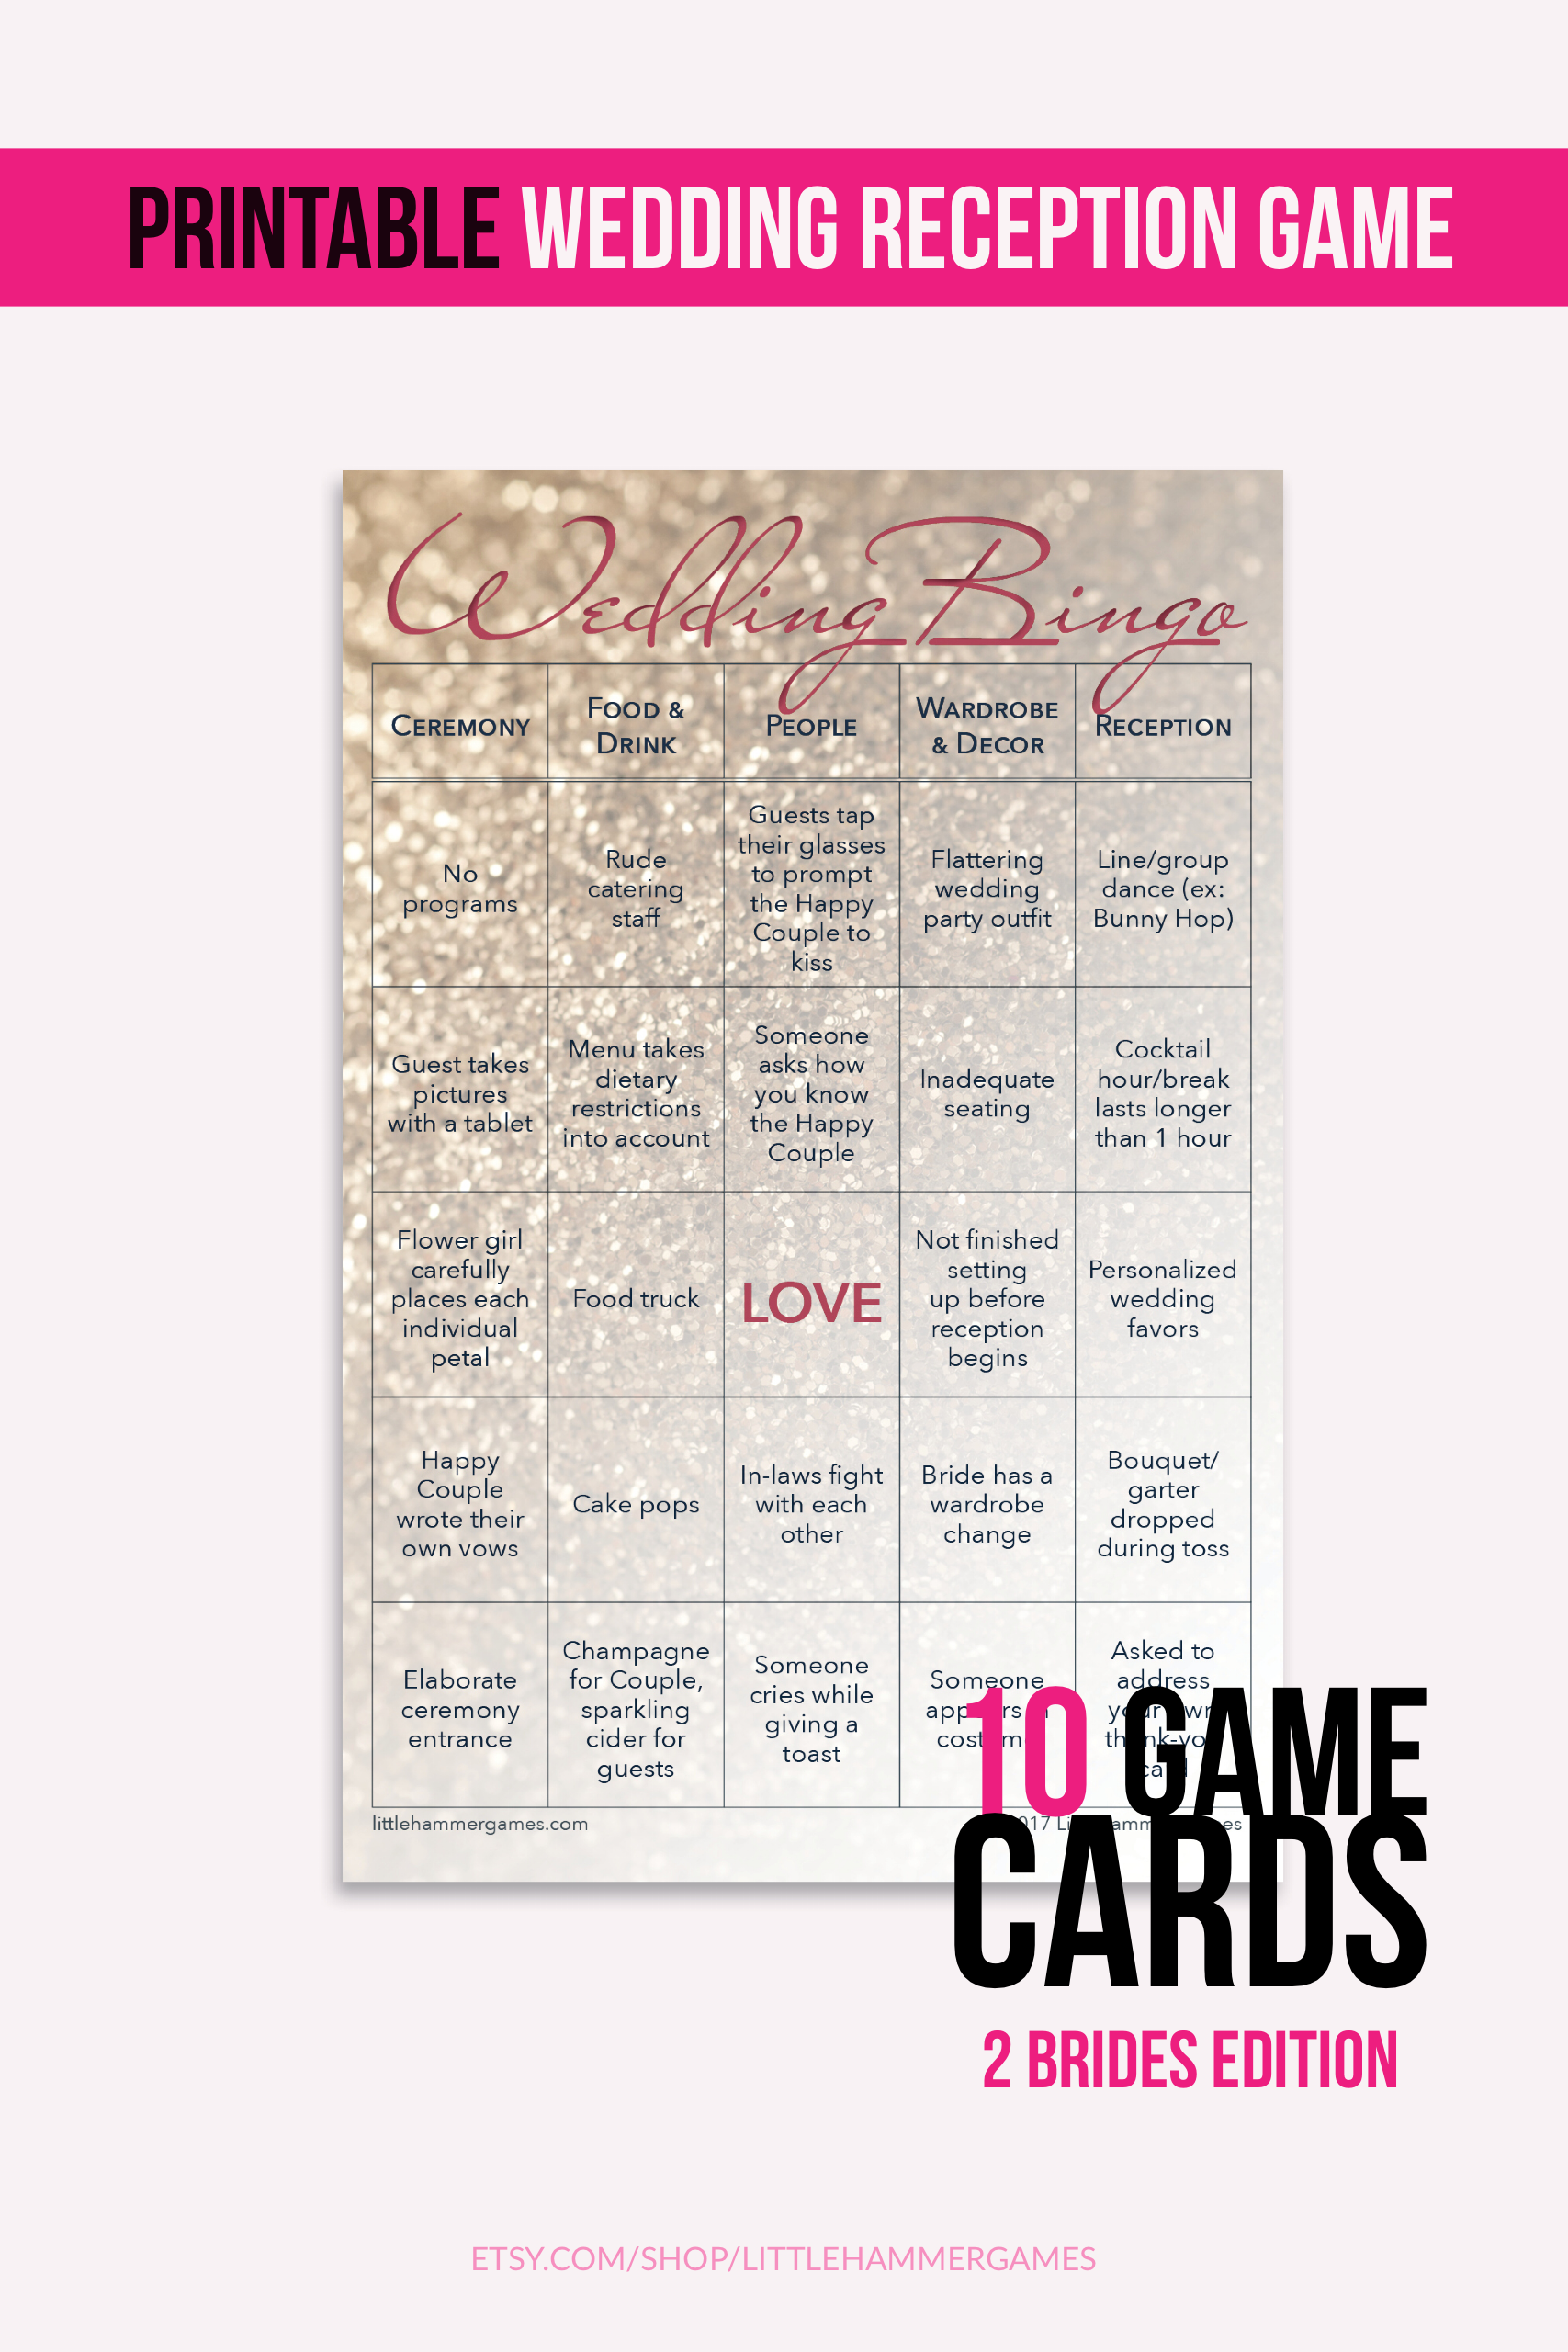 Printable wedding reception game: Wedding Bingo 2 Brides Edition is now available as a printable! It can easily be played between dancing and eating and is ideal for entertaining your guests while you're off taking pictures or stealing a quiet moment together. The digital download with 10 game cards is perfect for last minute wedding plans.